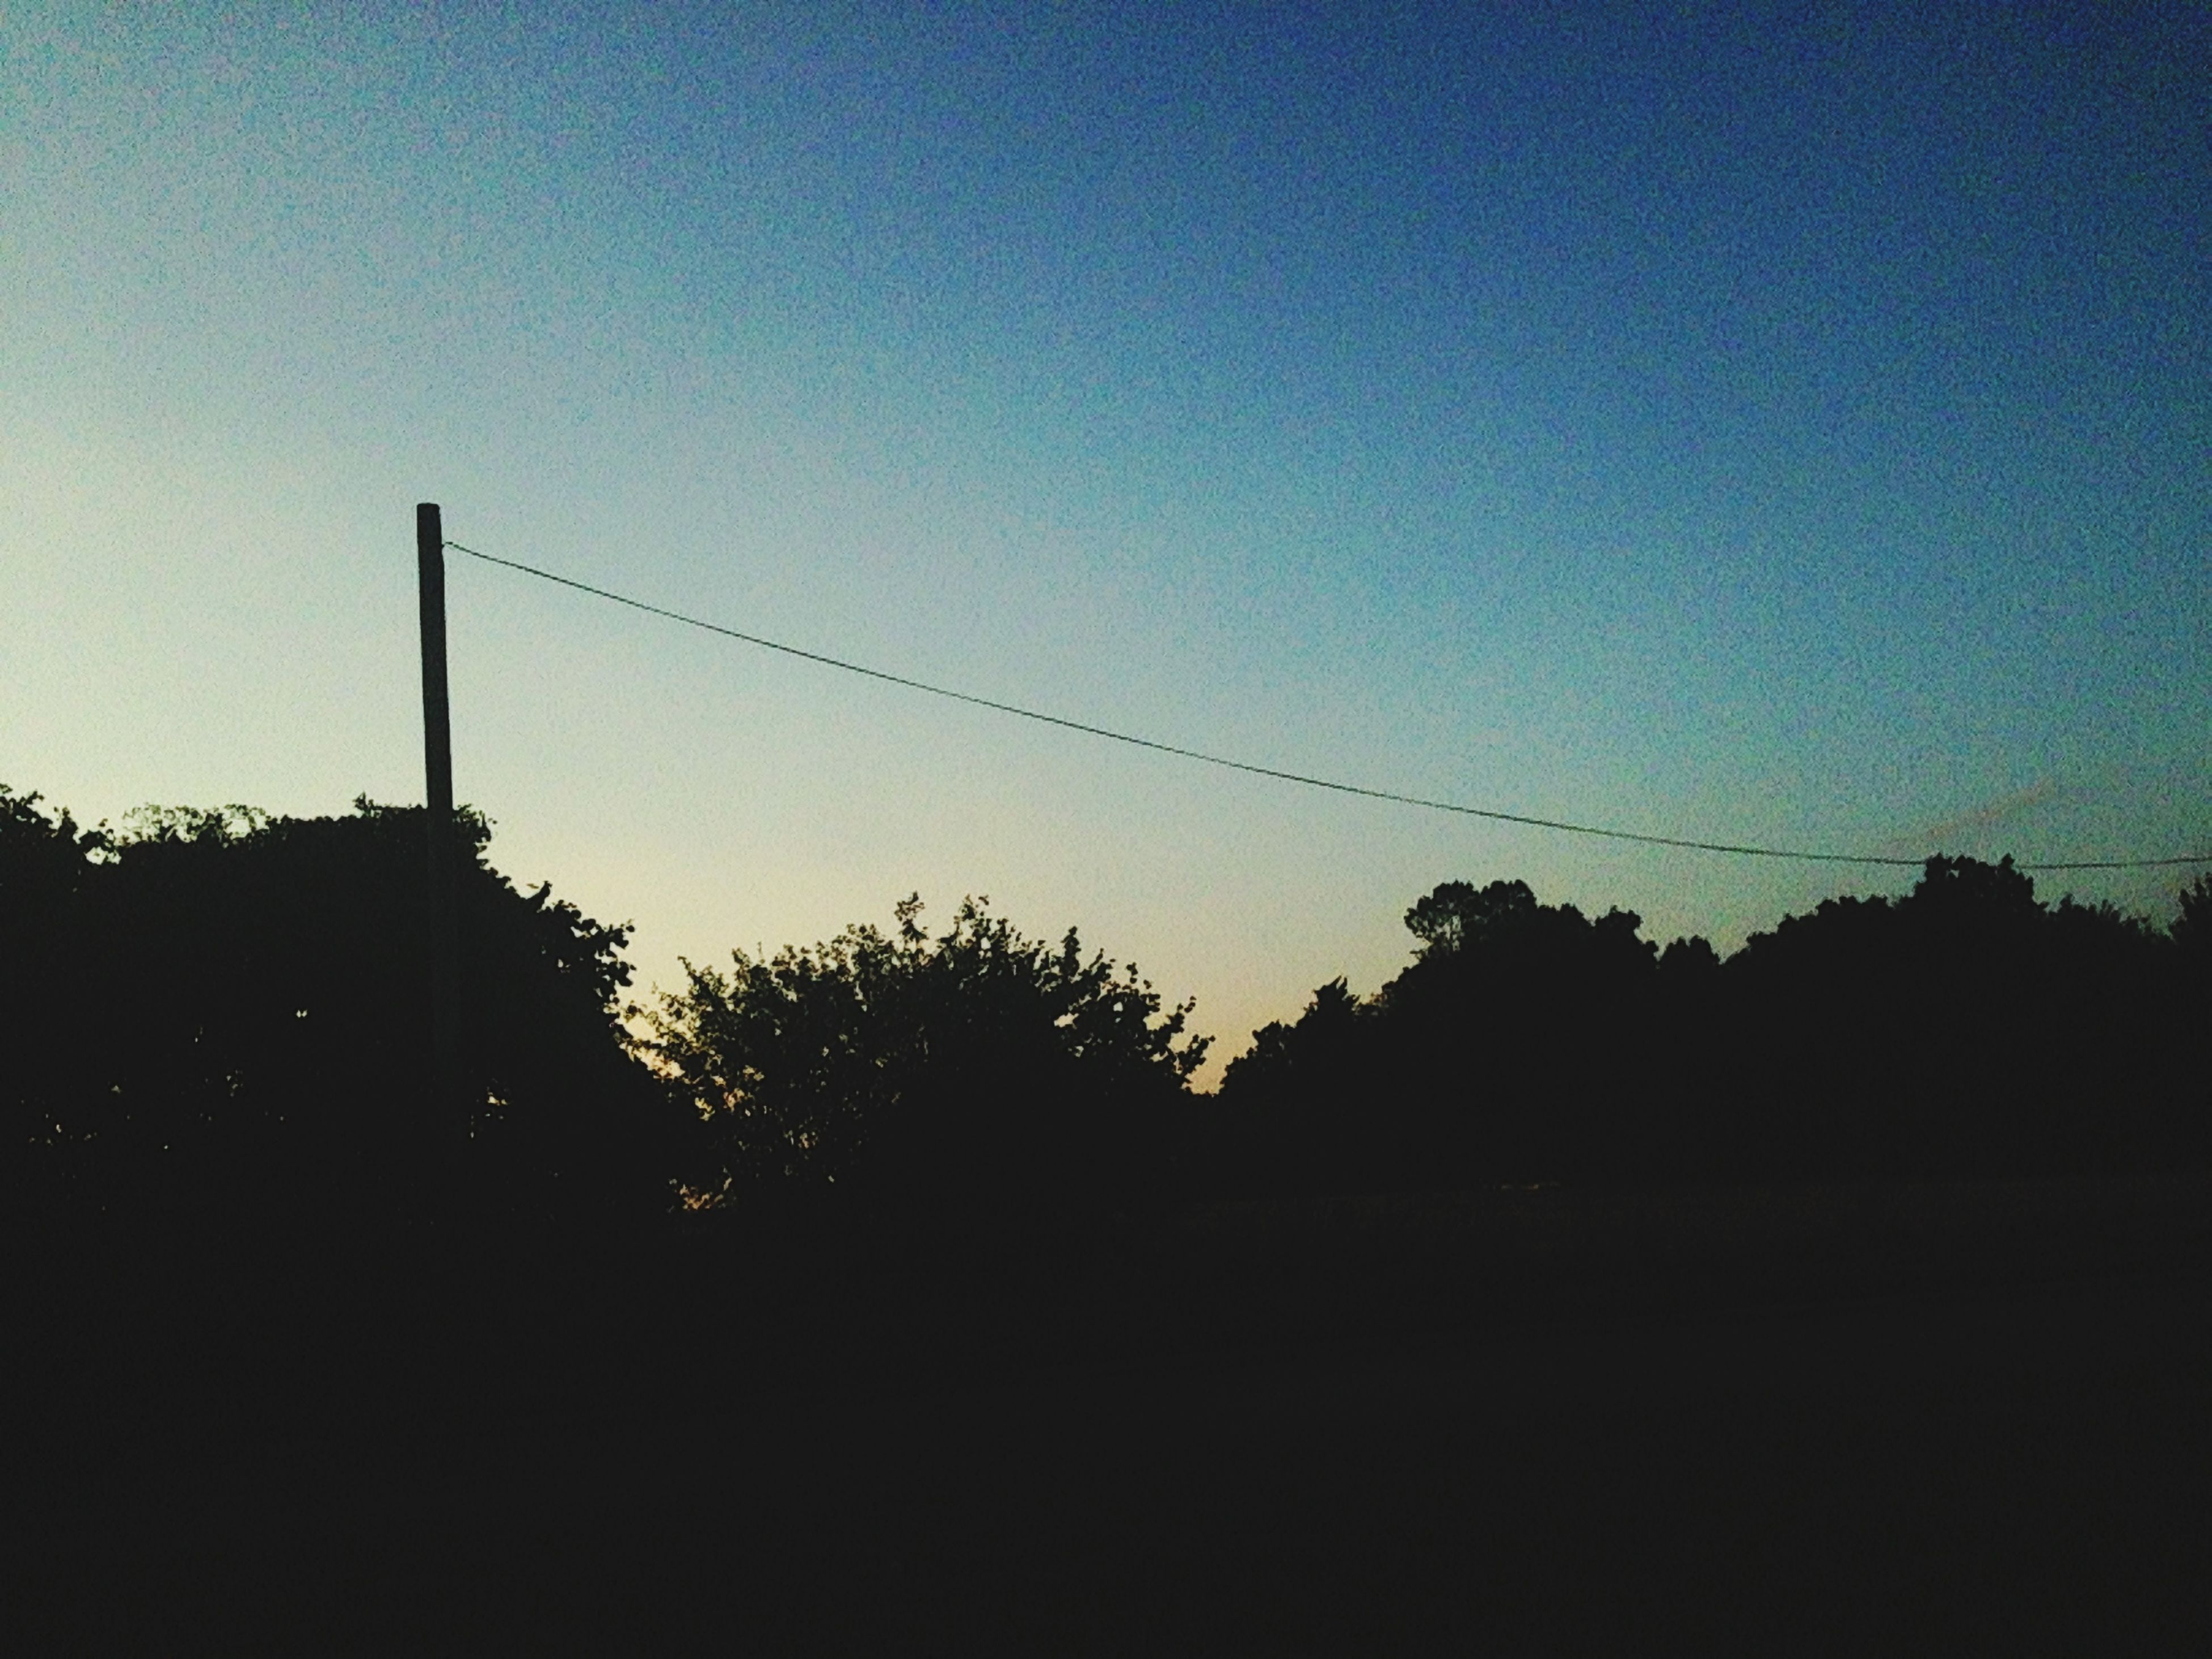 silhouette, copy space, clear sky, sunset, tree, tranquility, low angle view, dusk, tranquil scene, nature, beauty in nature, sky, dark, scenics, blue, outline, outdoors, landscape, no people, power line